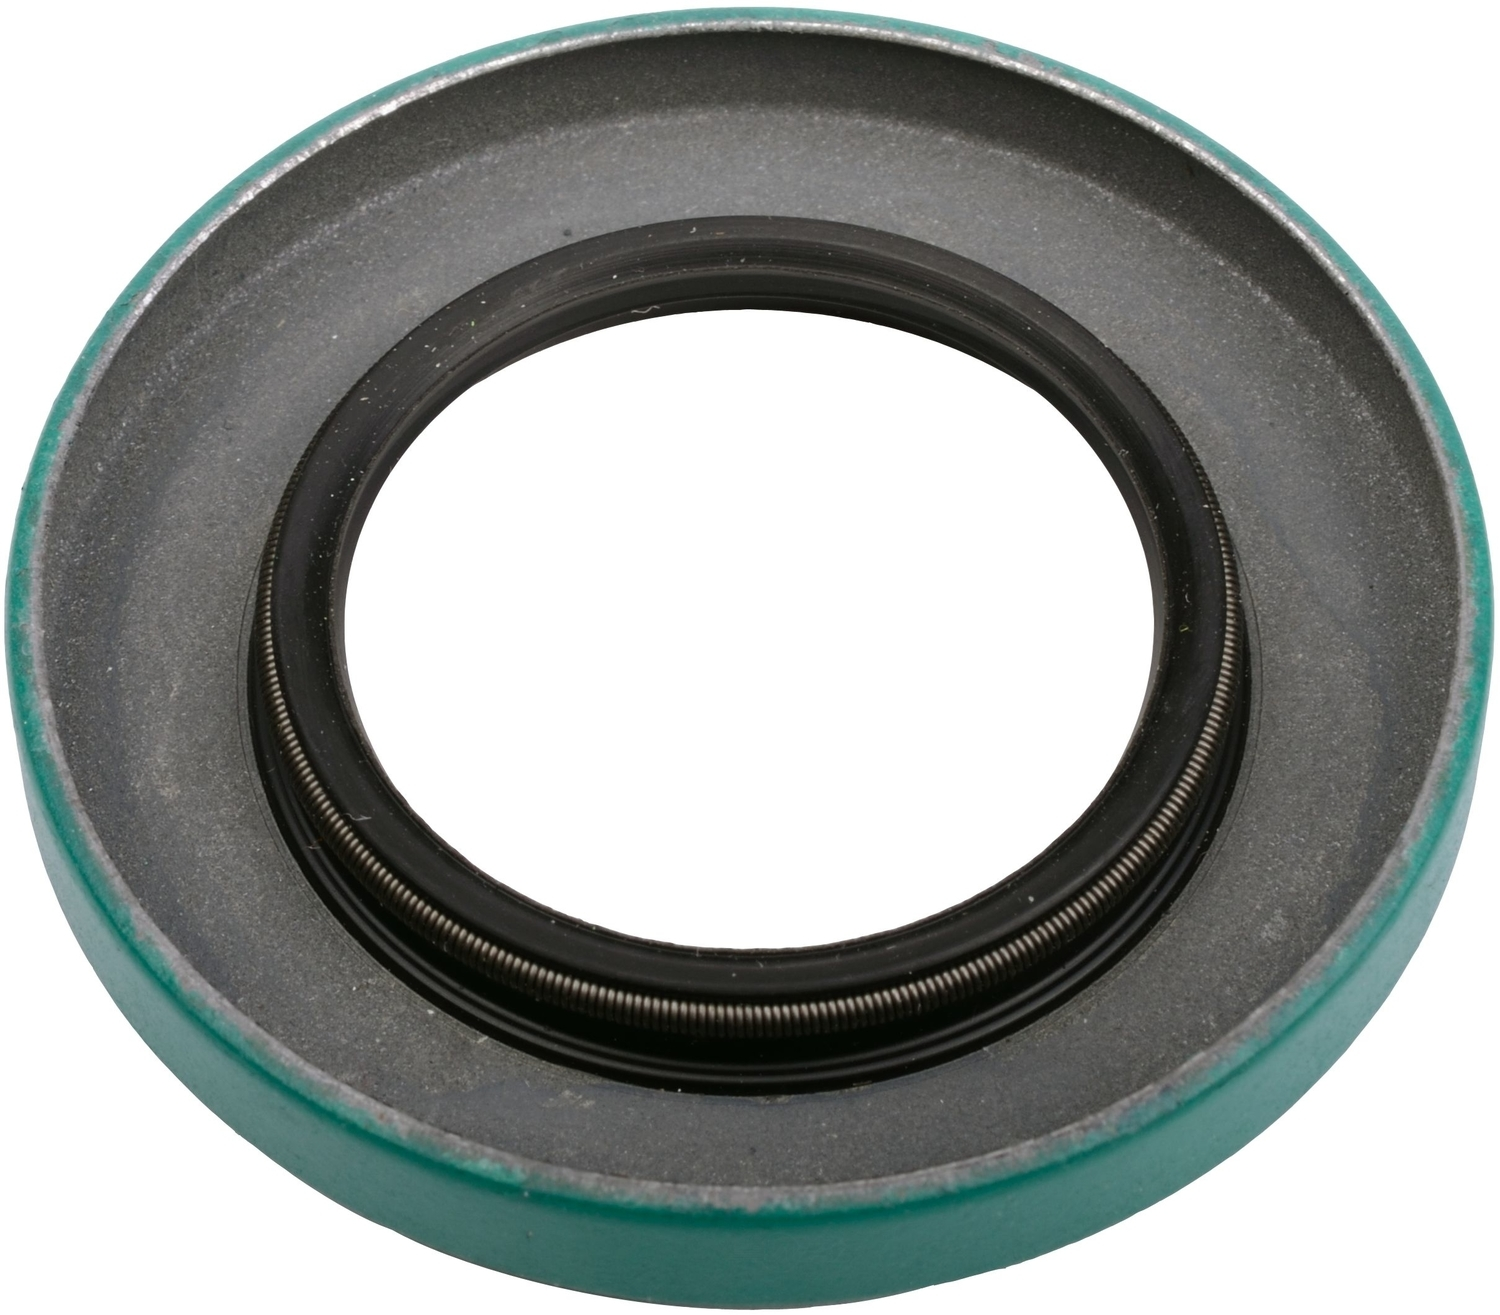 SKF (CHICAGO RAWHIDE) - Auto Trans Output Shaft Seal - SKF 17759